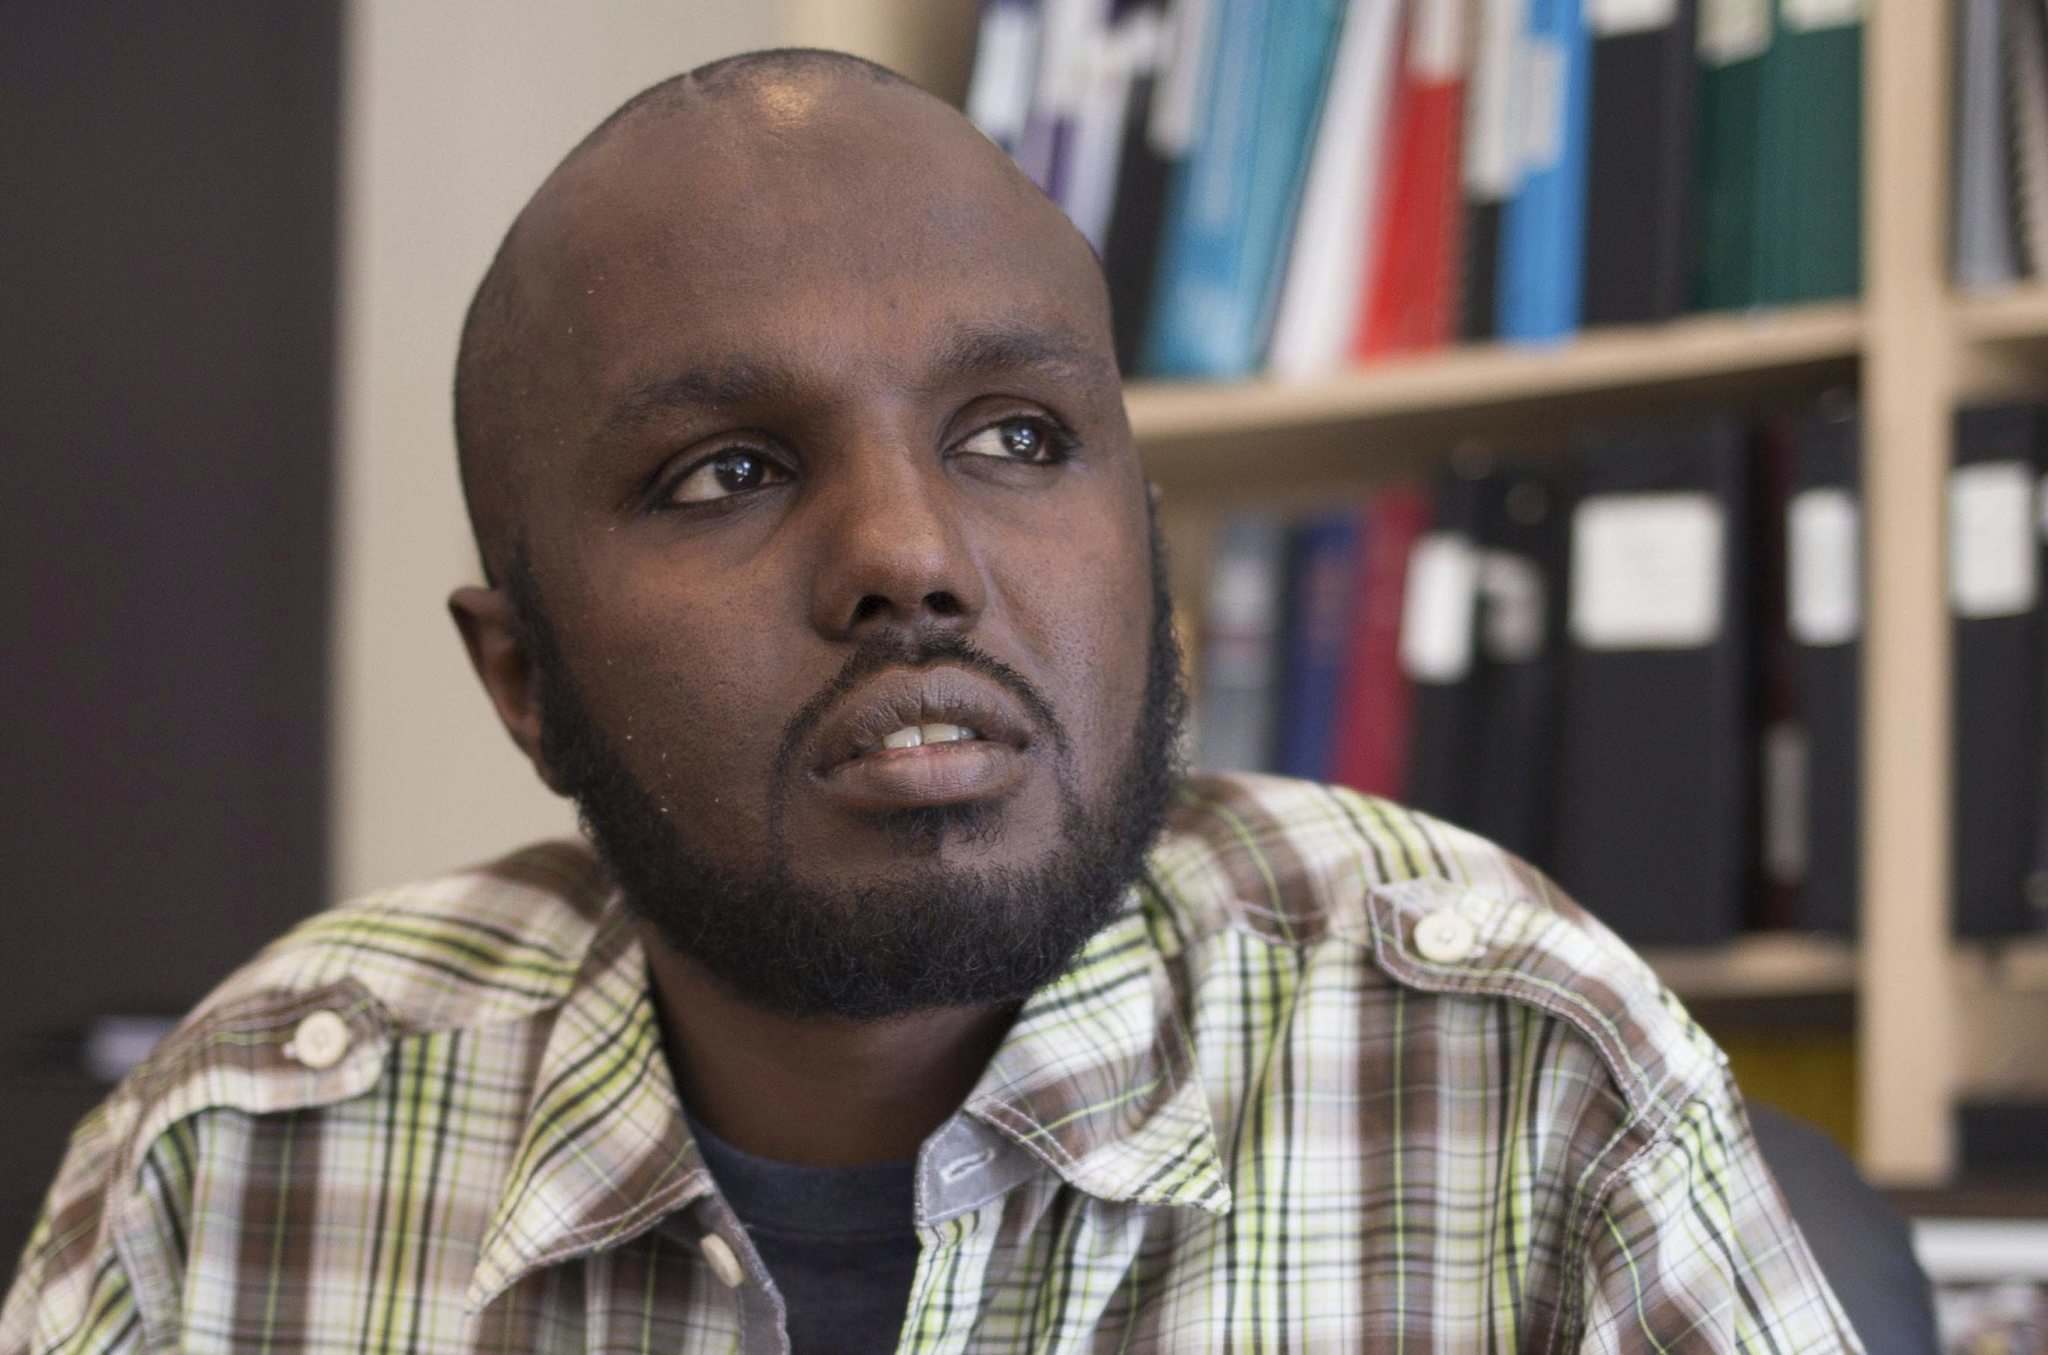 JEN DOERKSEN / WINNIPEG FREE PRESS</p><p>Ahmed Aden Ali, 37, is waiting to get a work permit so he can support himself while his immigration application is considered. He also volunteers as an interpreter at the inner-city shelter where he lives.</p></p>